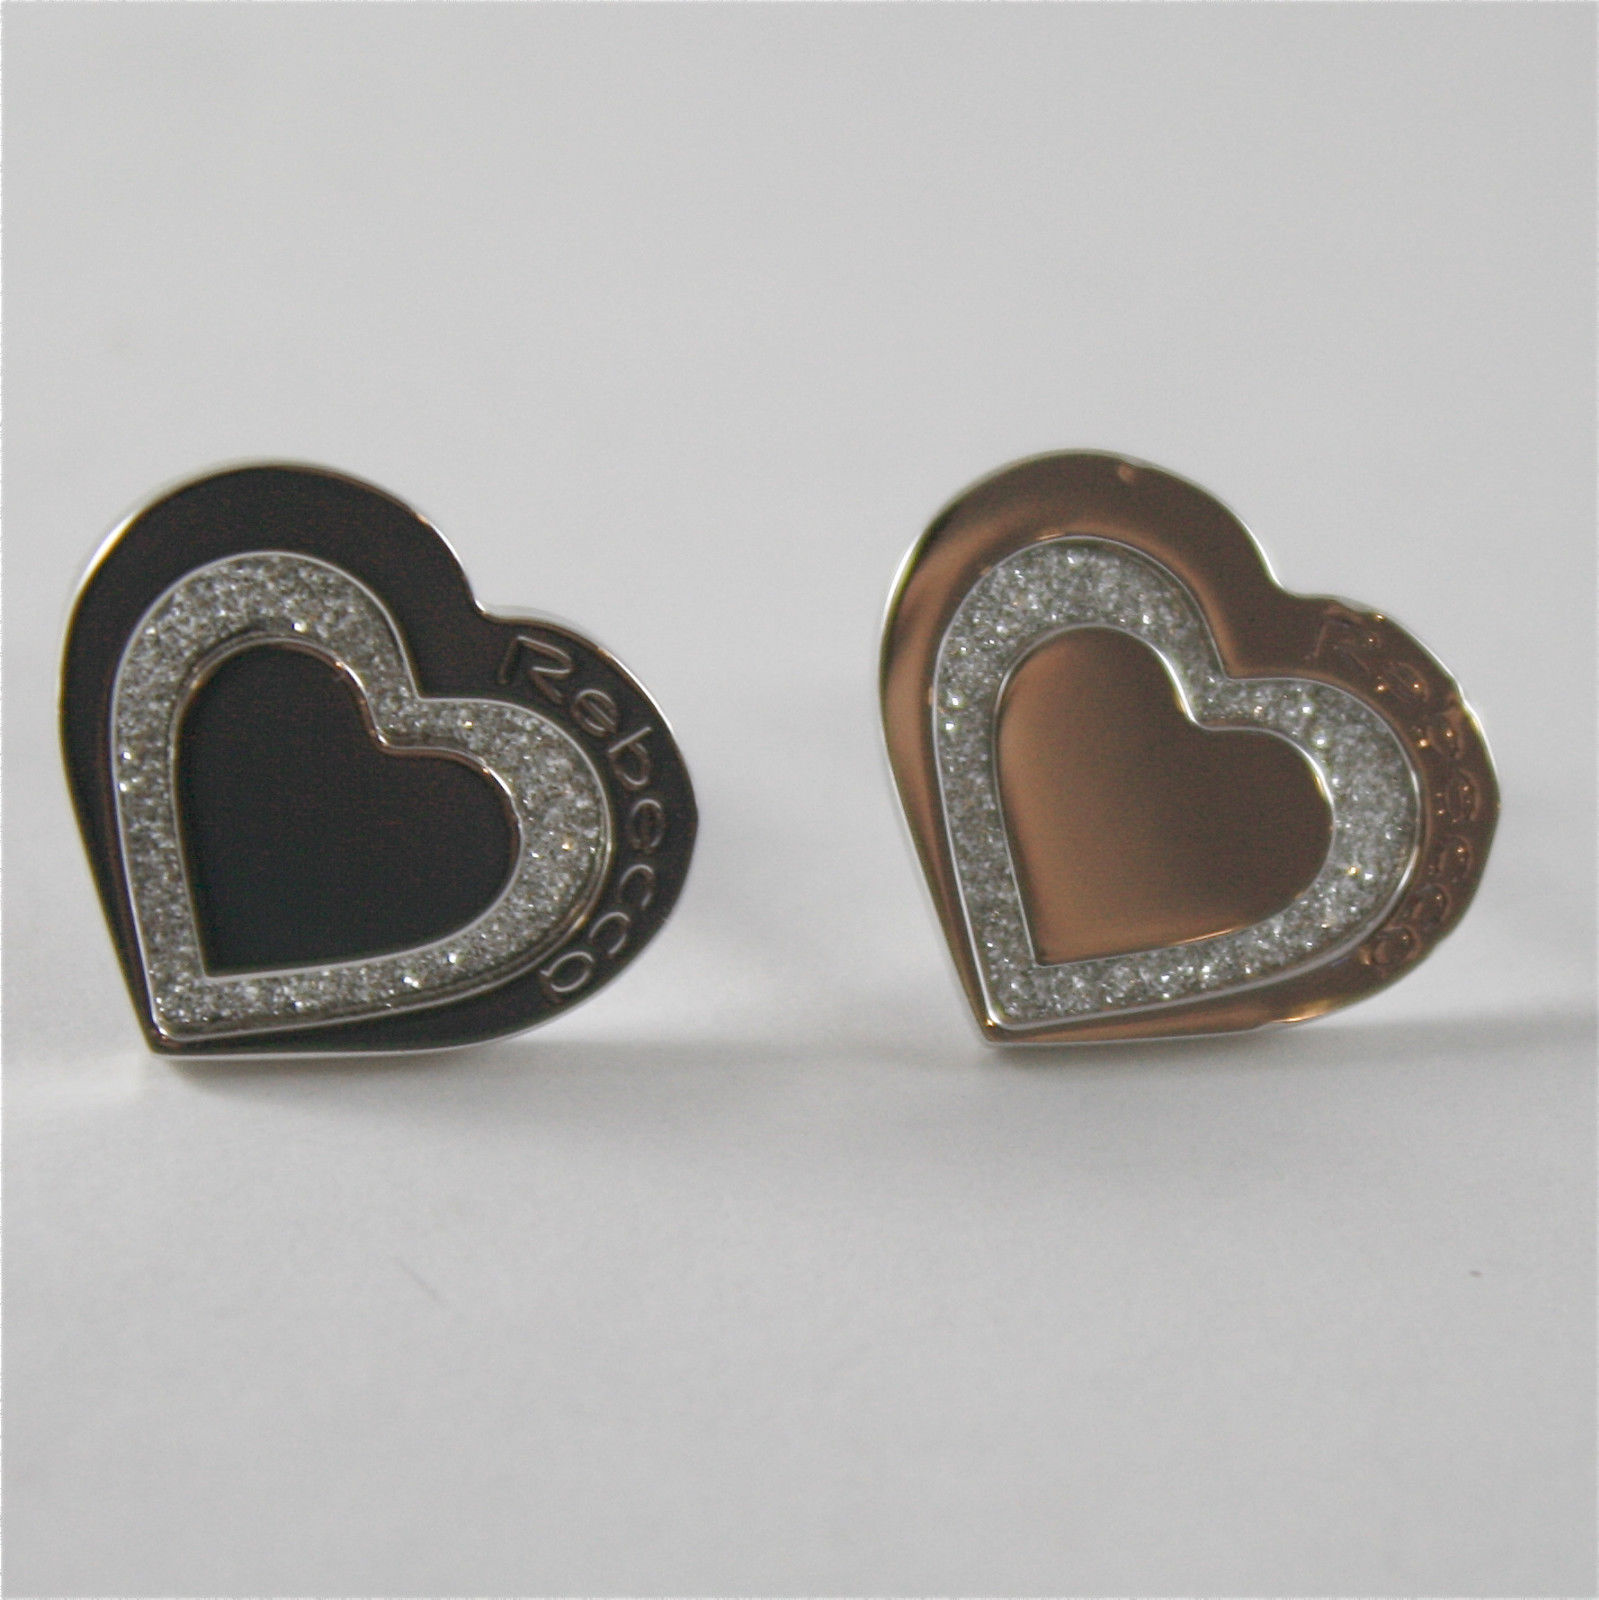 WHITE GOLD PLATED BRONZE REBECCA EARRINGS WITH HEART GLAM BMHOBB52 MADE IN ITALY